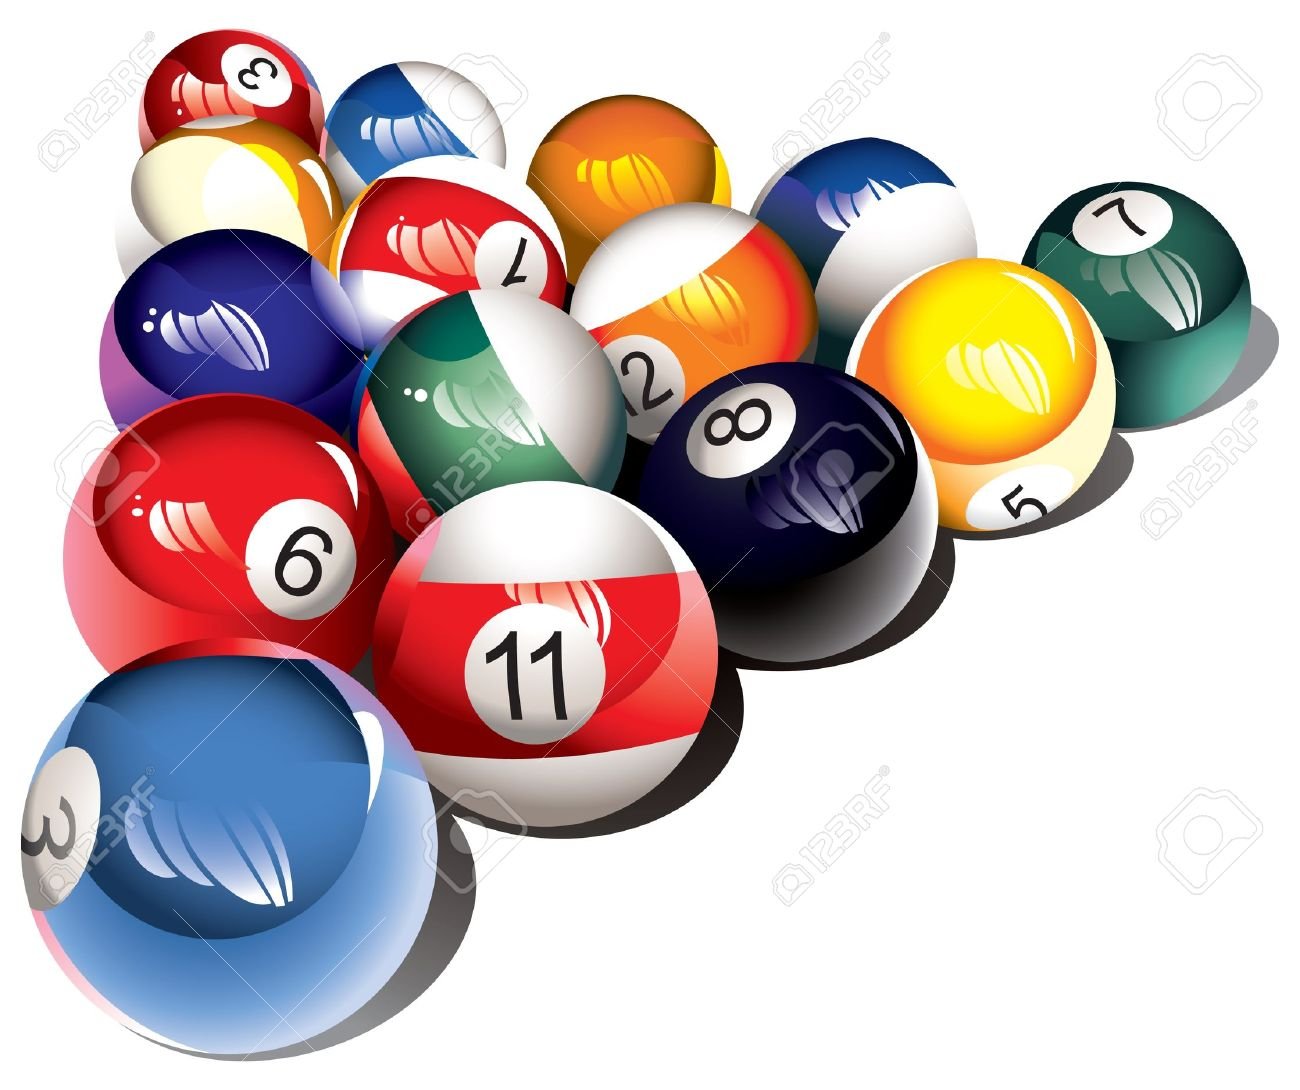 billiard online stock table of balls pool illustration